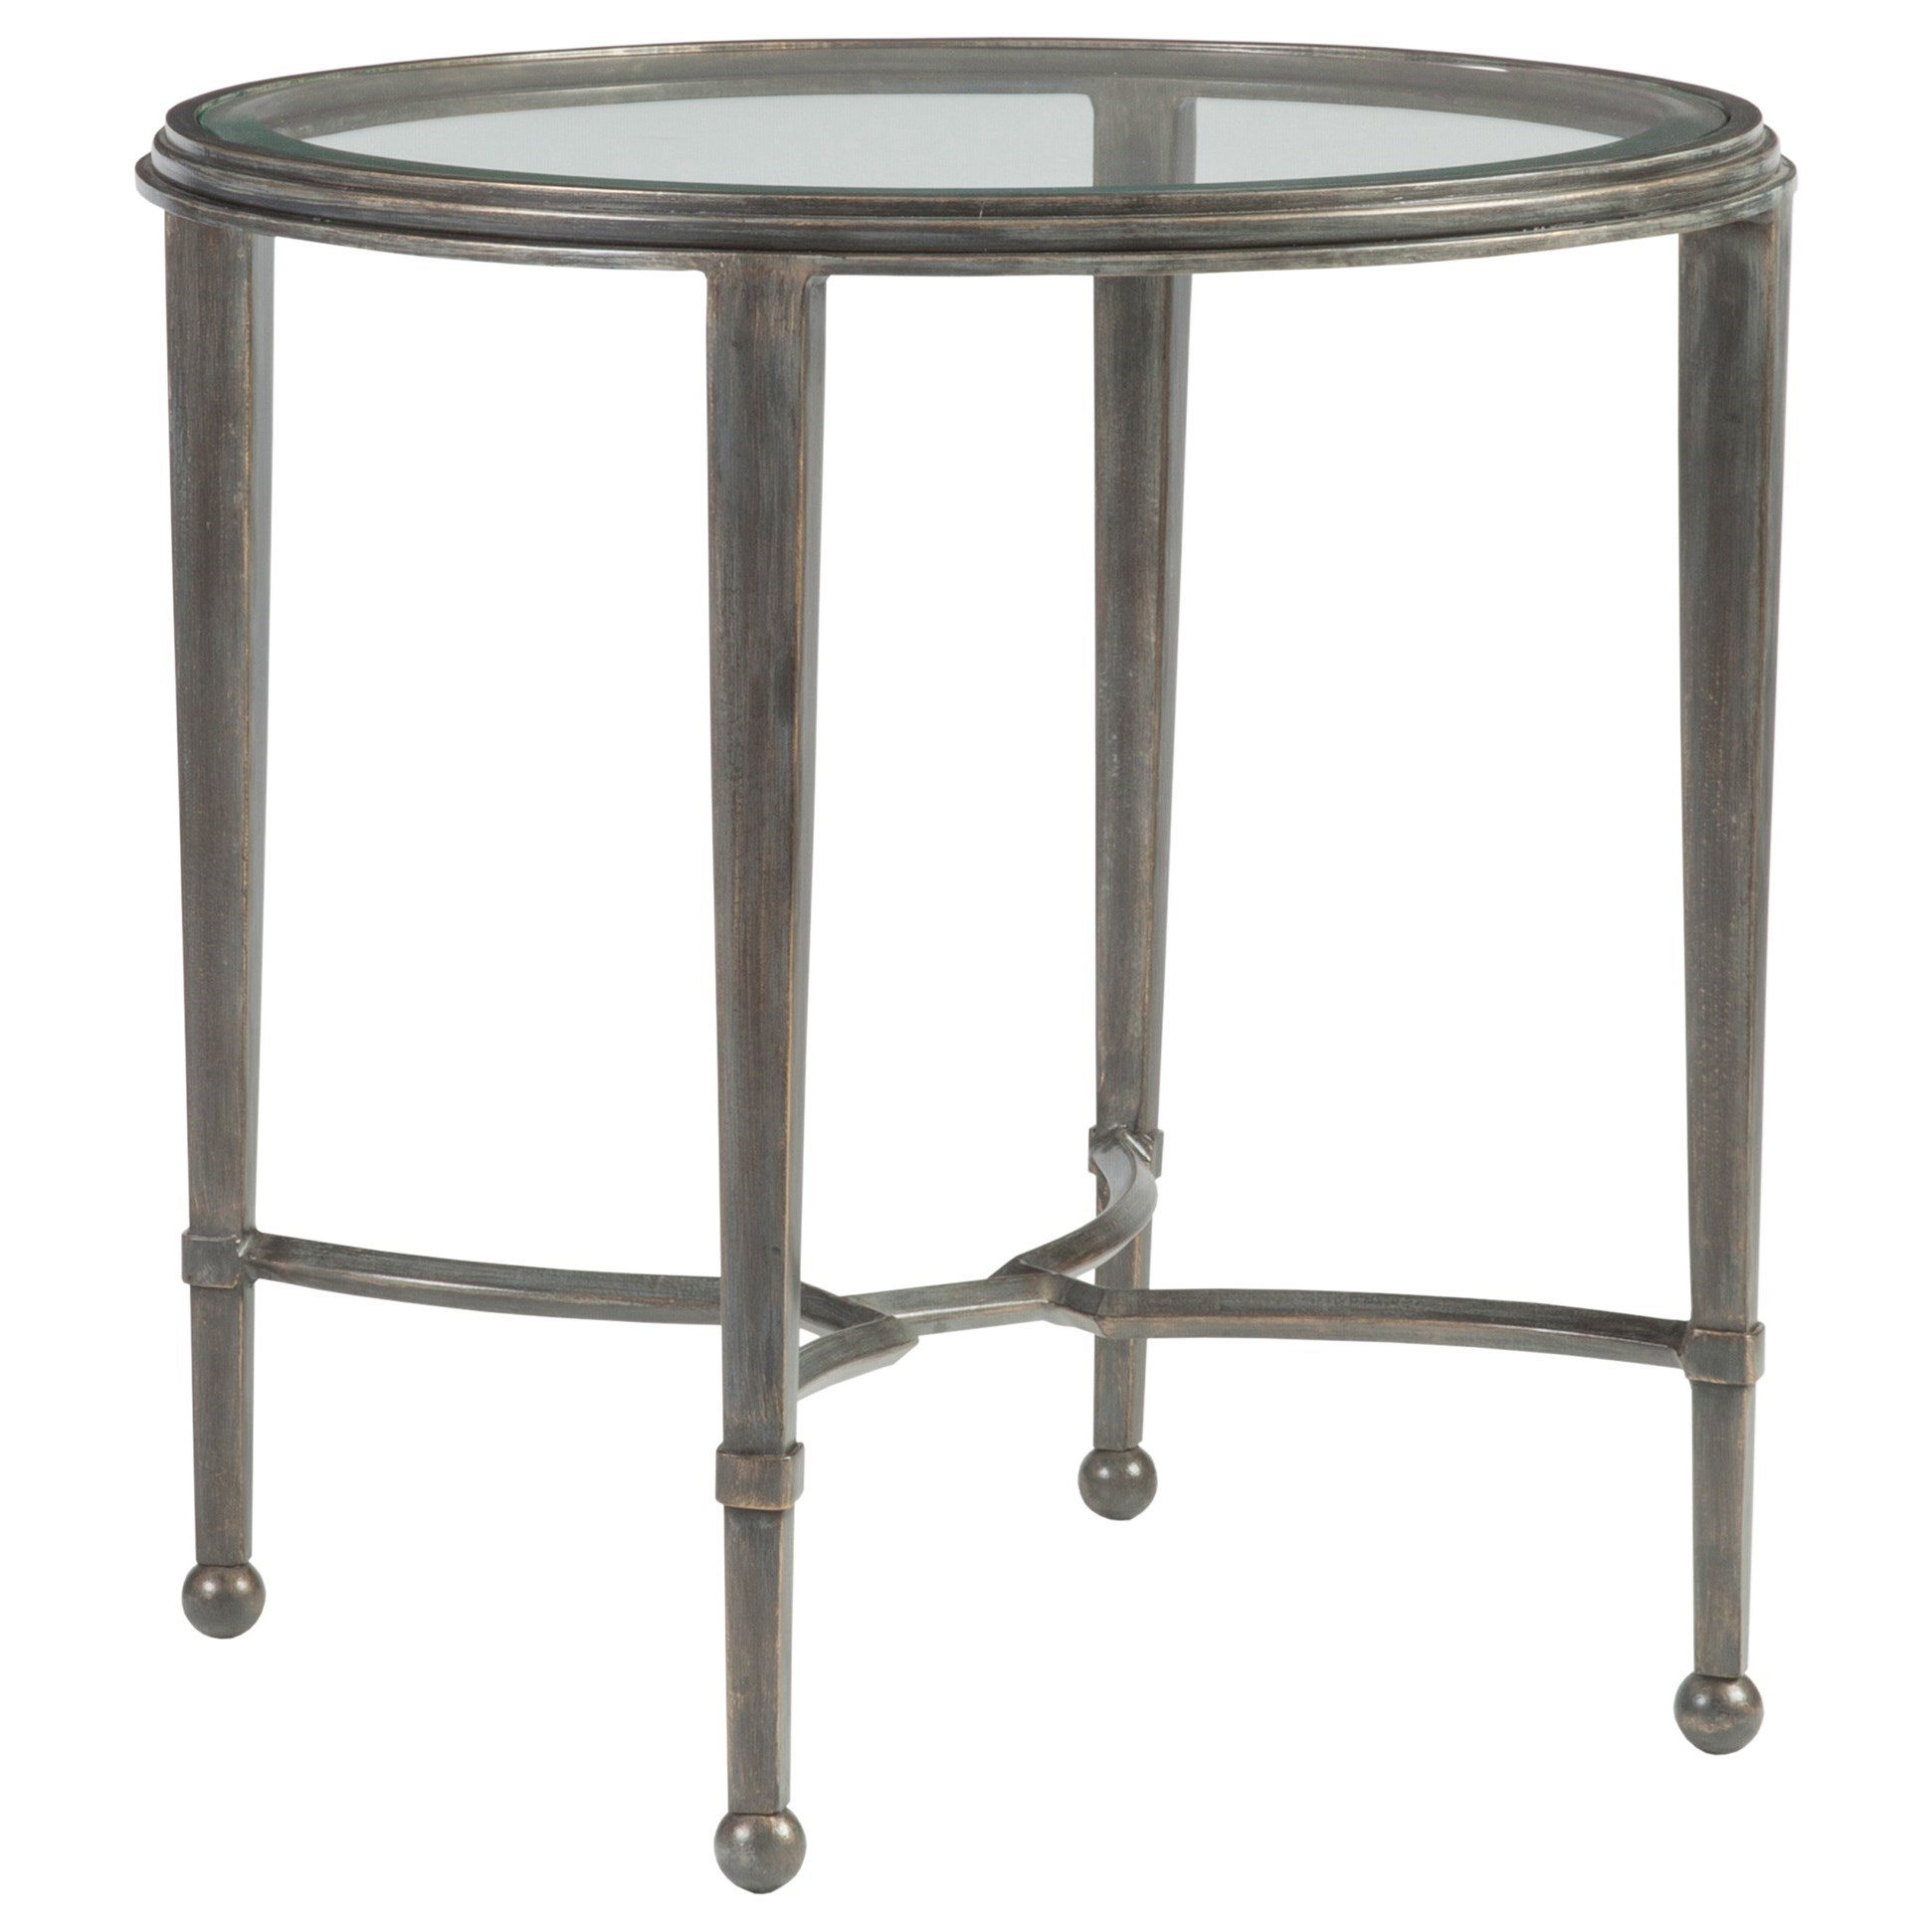 Metal Designs Sangiovese Round End Table by Artistica at Baer's Furniture